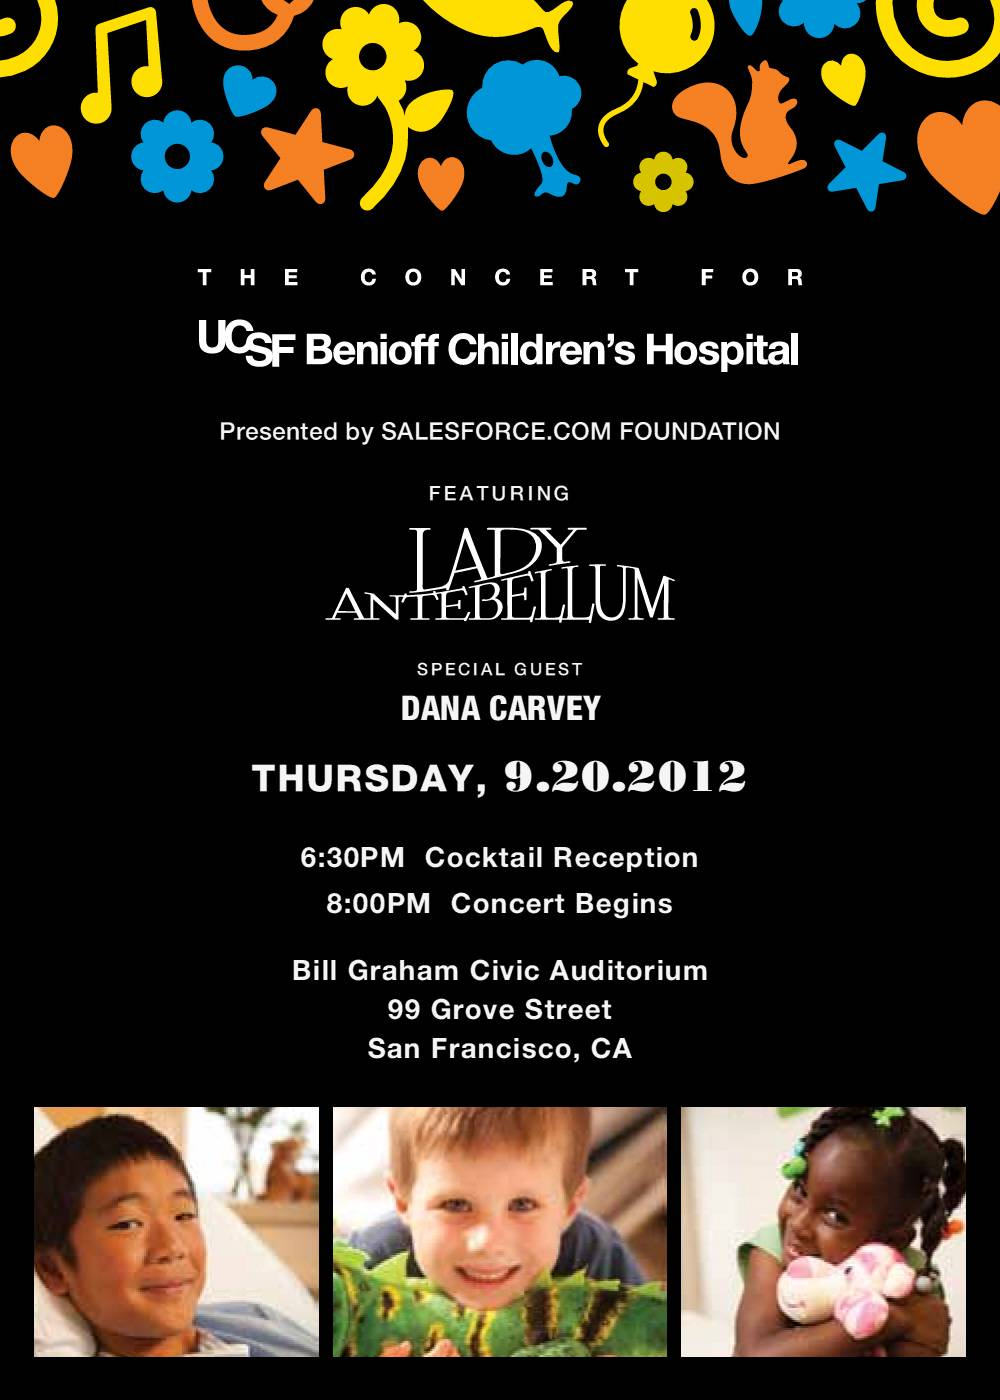 The_Concert_for_UCSF_BCH_2012_Emailable_Invitation_2